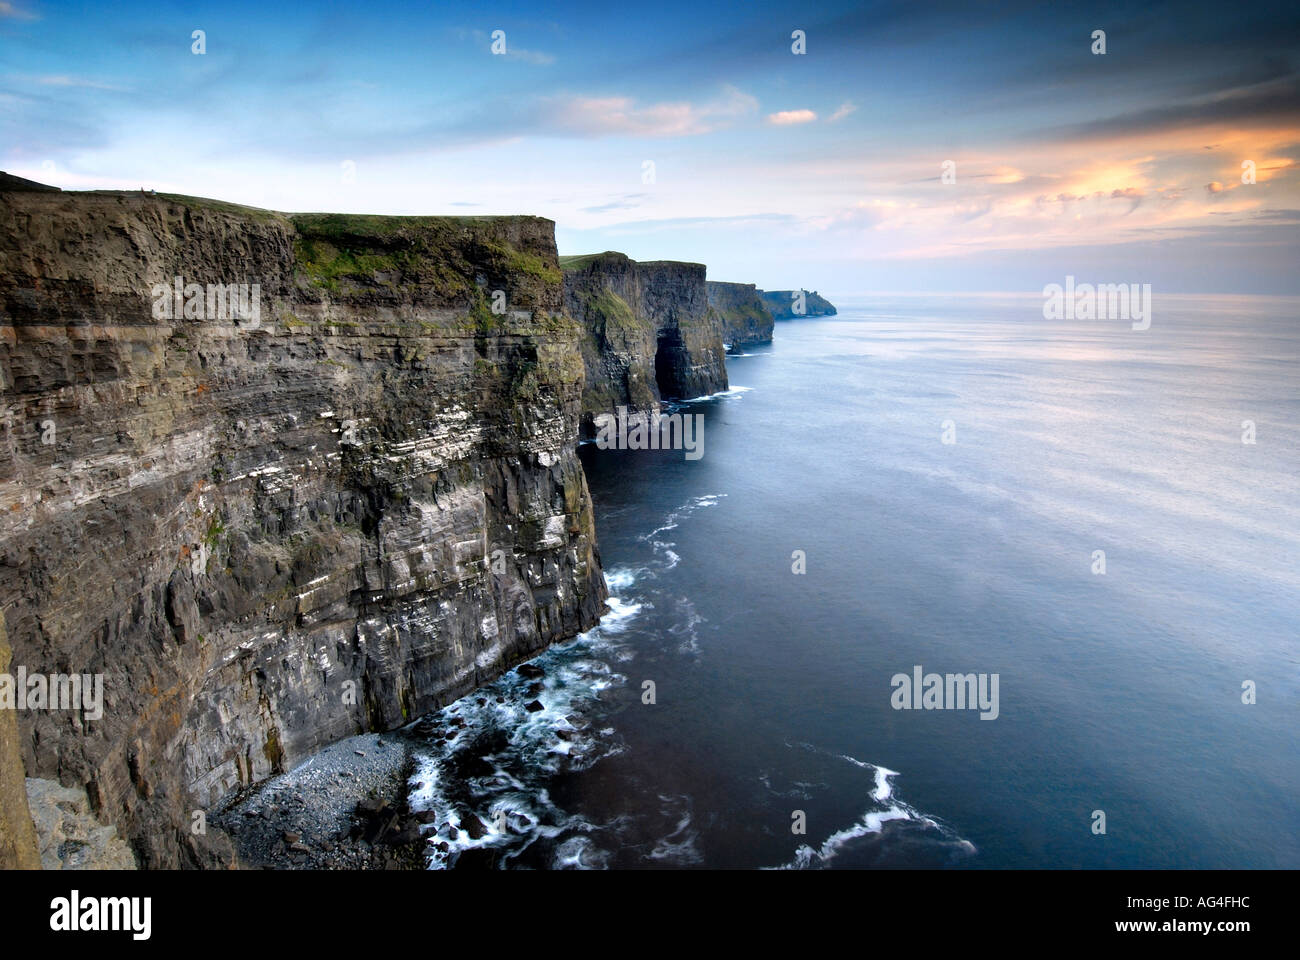 Cliffs of Moher, Co. Clare - Stock Image